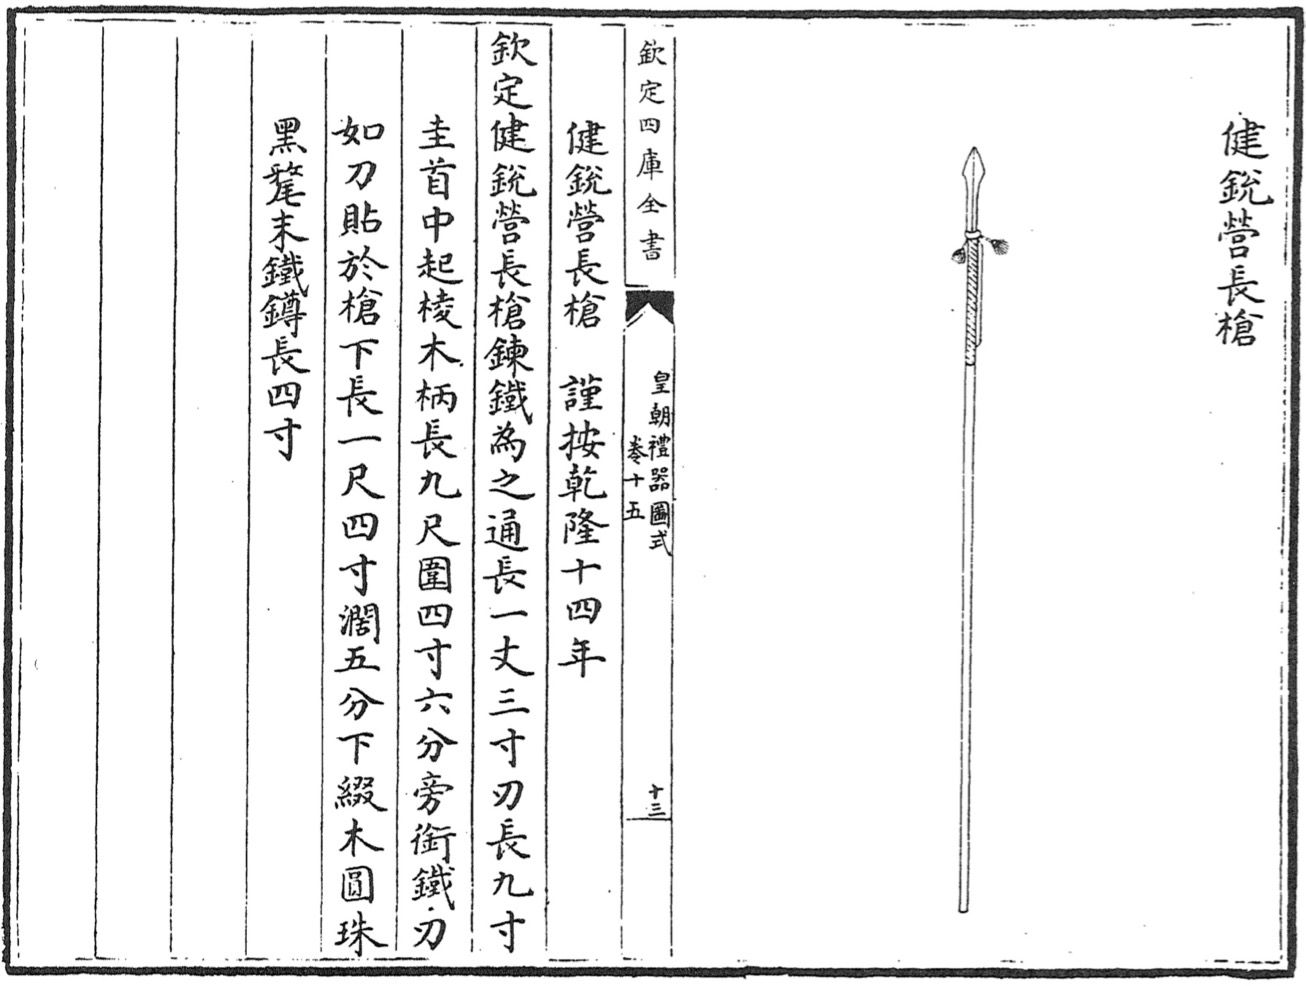 Jianruiying long spear